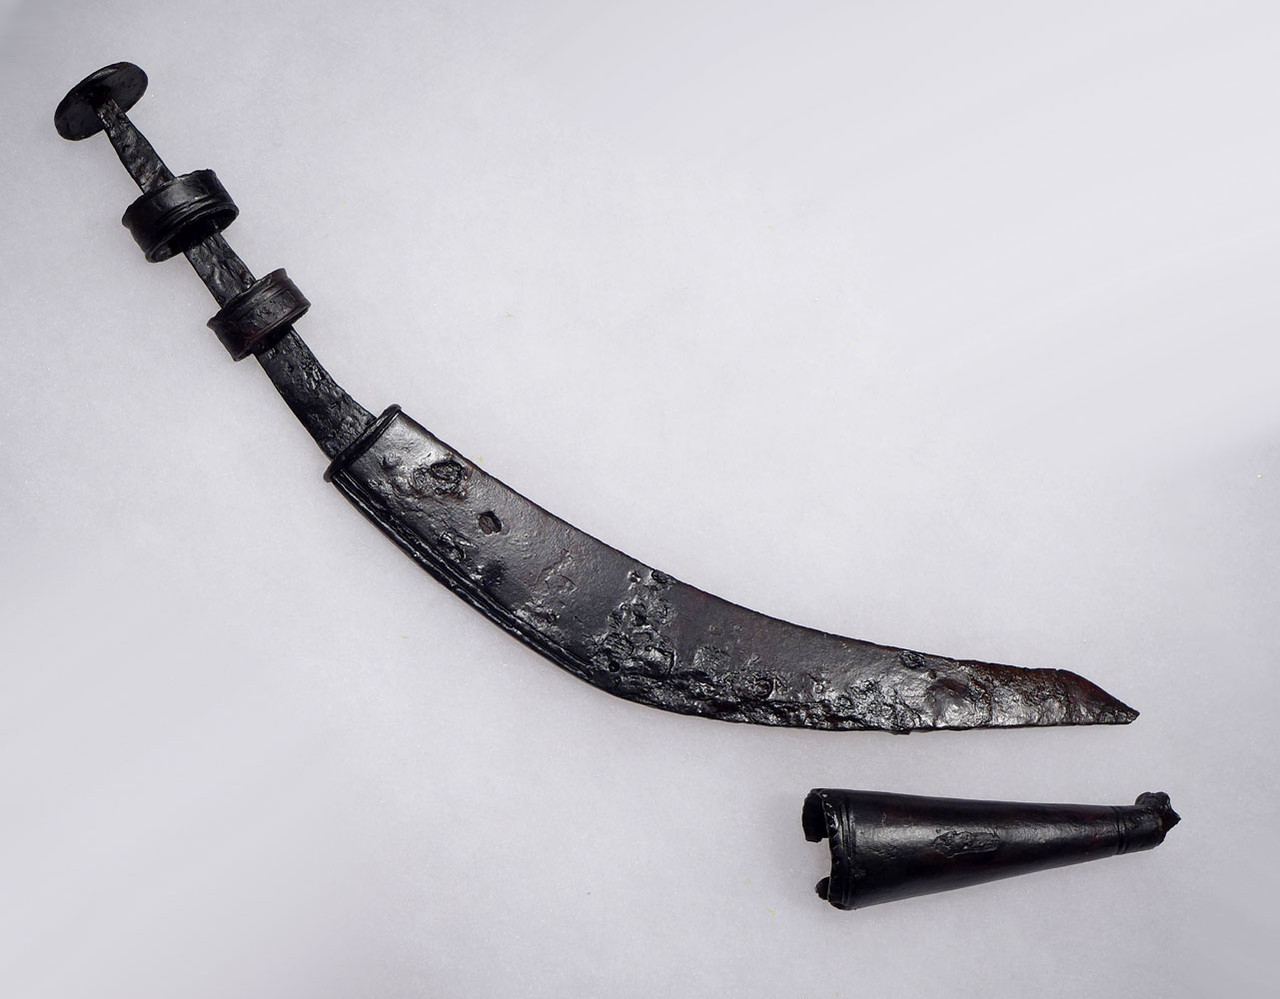 RARE COMPLETE ANCIENT BALKAN CELTIC IRON MACHAIRA CURVED DAGGER KNIFE WITH SCABBARD CHAPE TIP  *CEL012